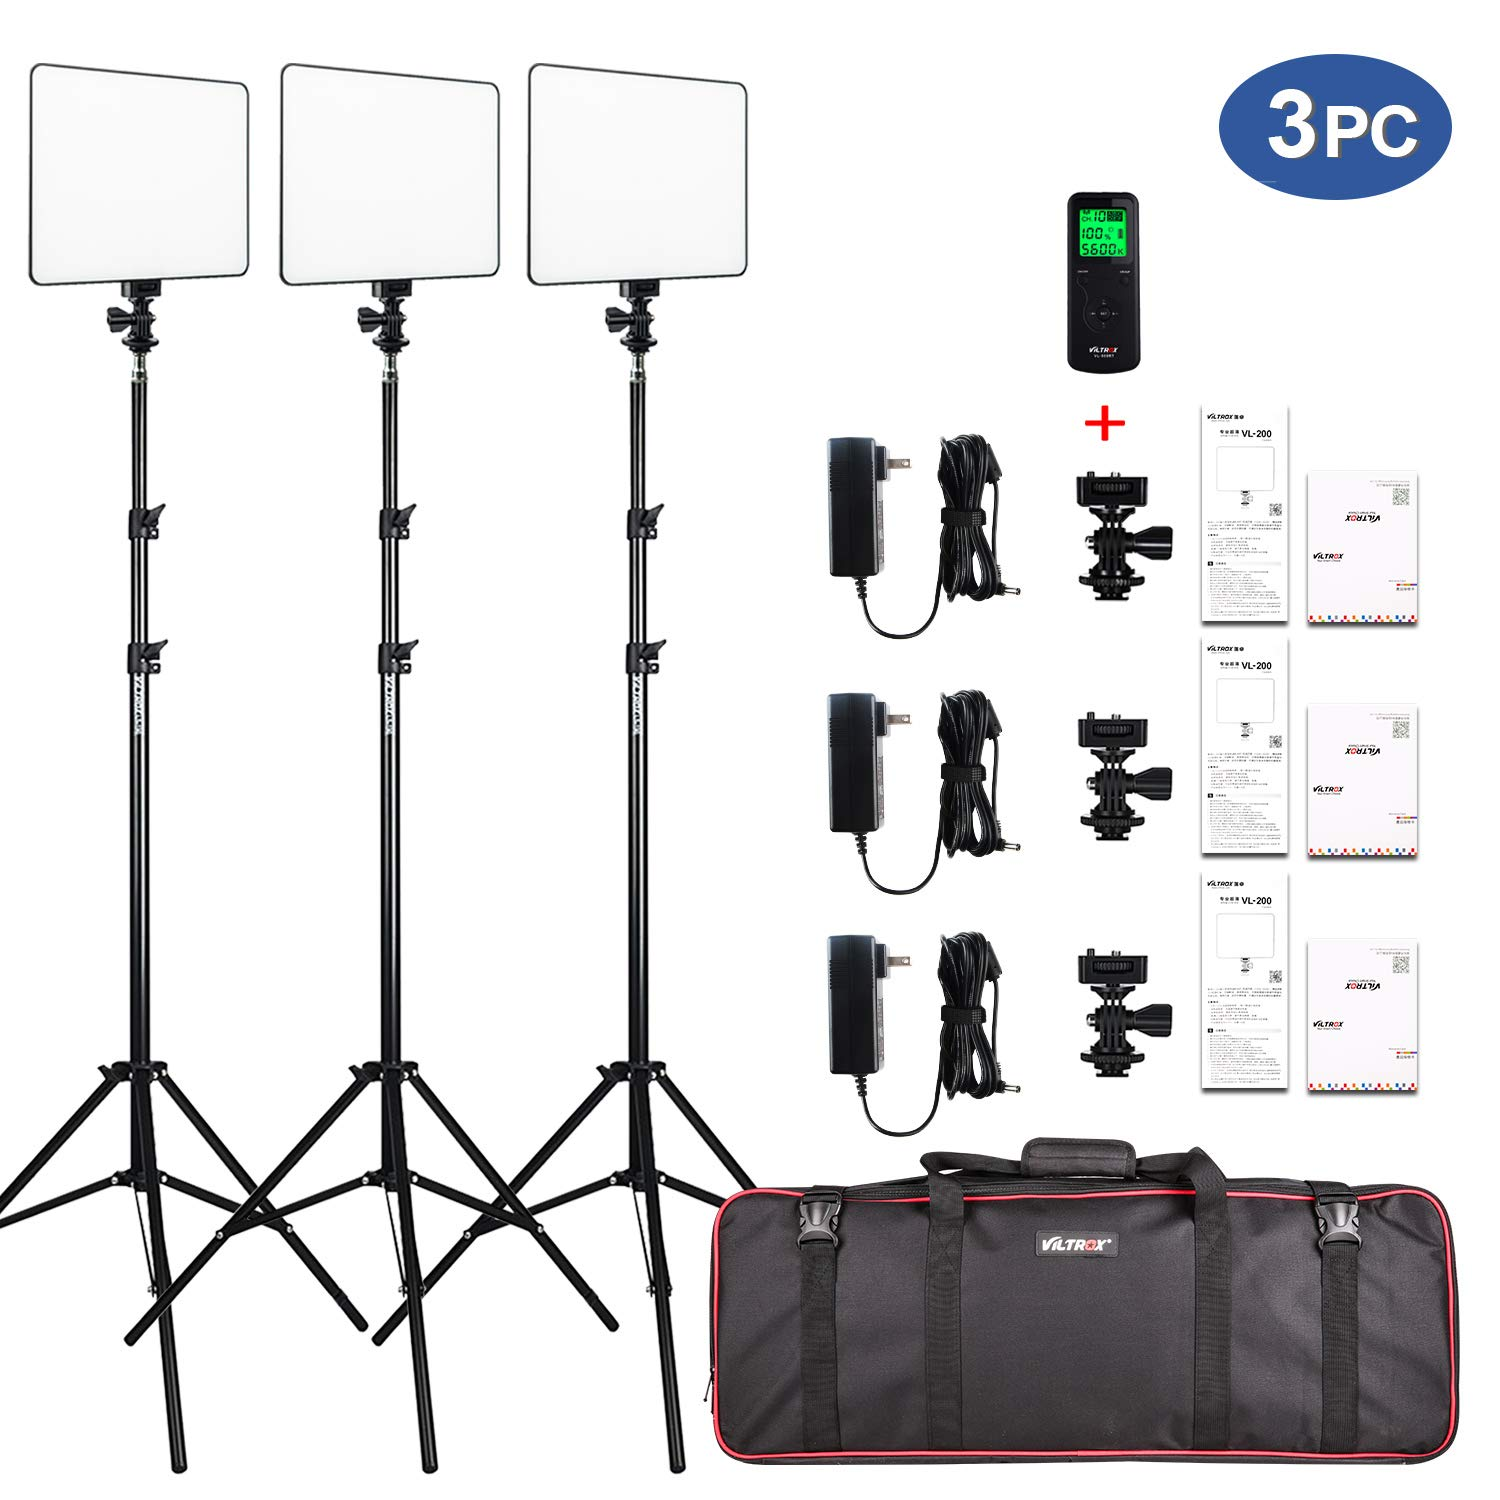 VILTROX VL-200 3 Packs Ultra Thin Dimmable Bi-Color LED Video Light Panel Lighting Kit Includes: 3300K-5600K CRI 95 LED Light Panel with Hot Shoe Adapter/Light Stand/Remote Controller and AC Adapter